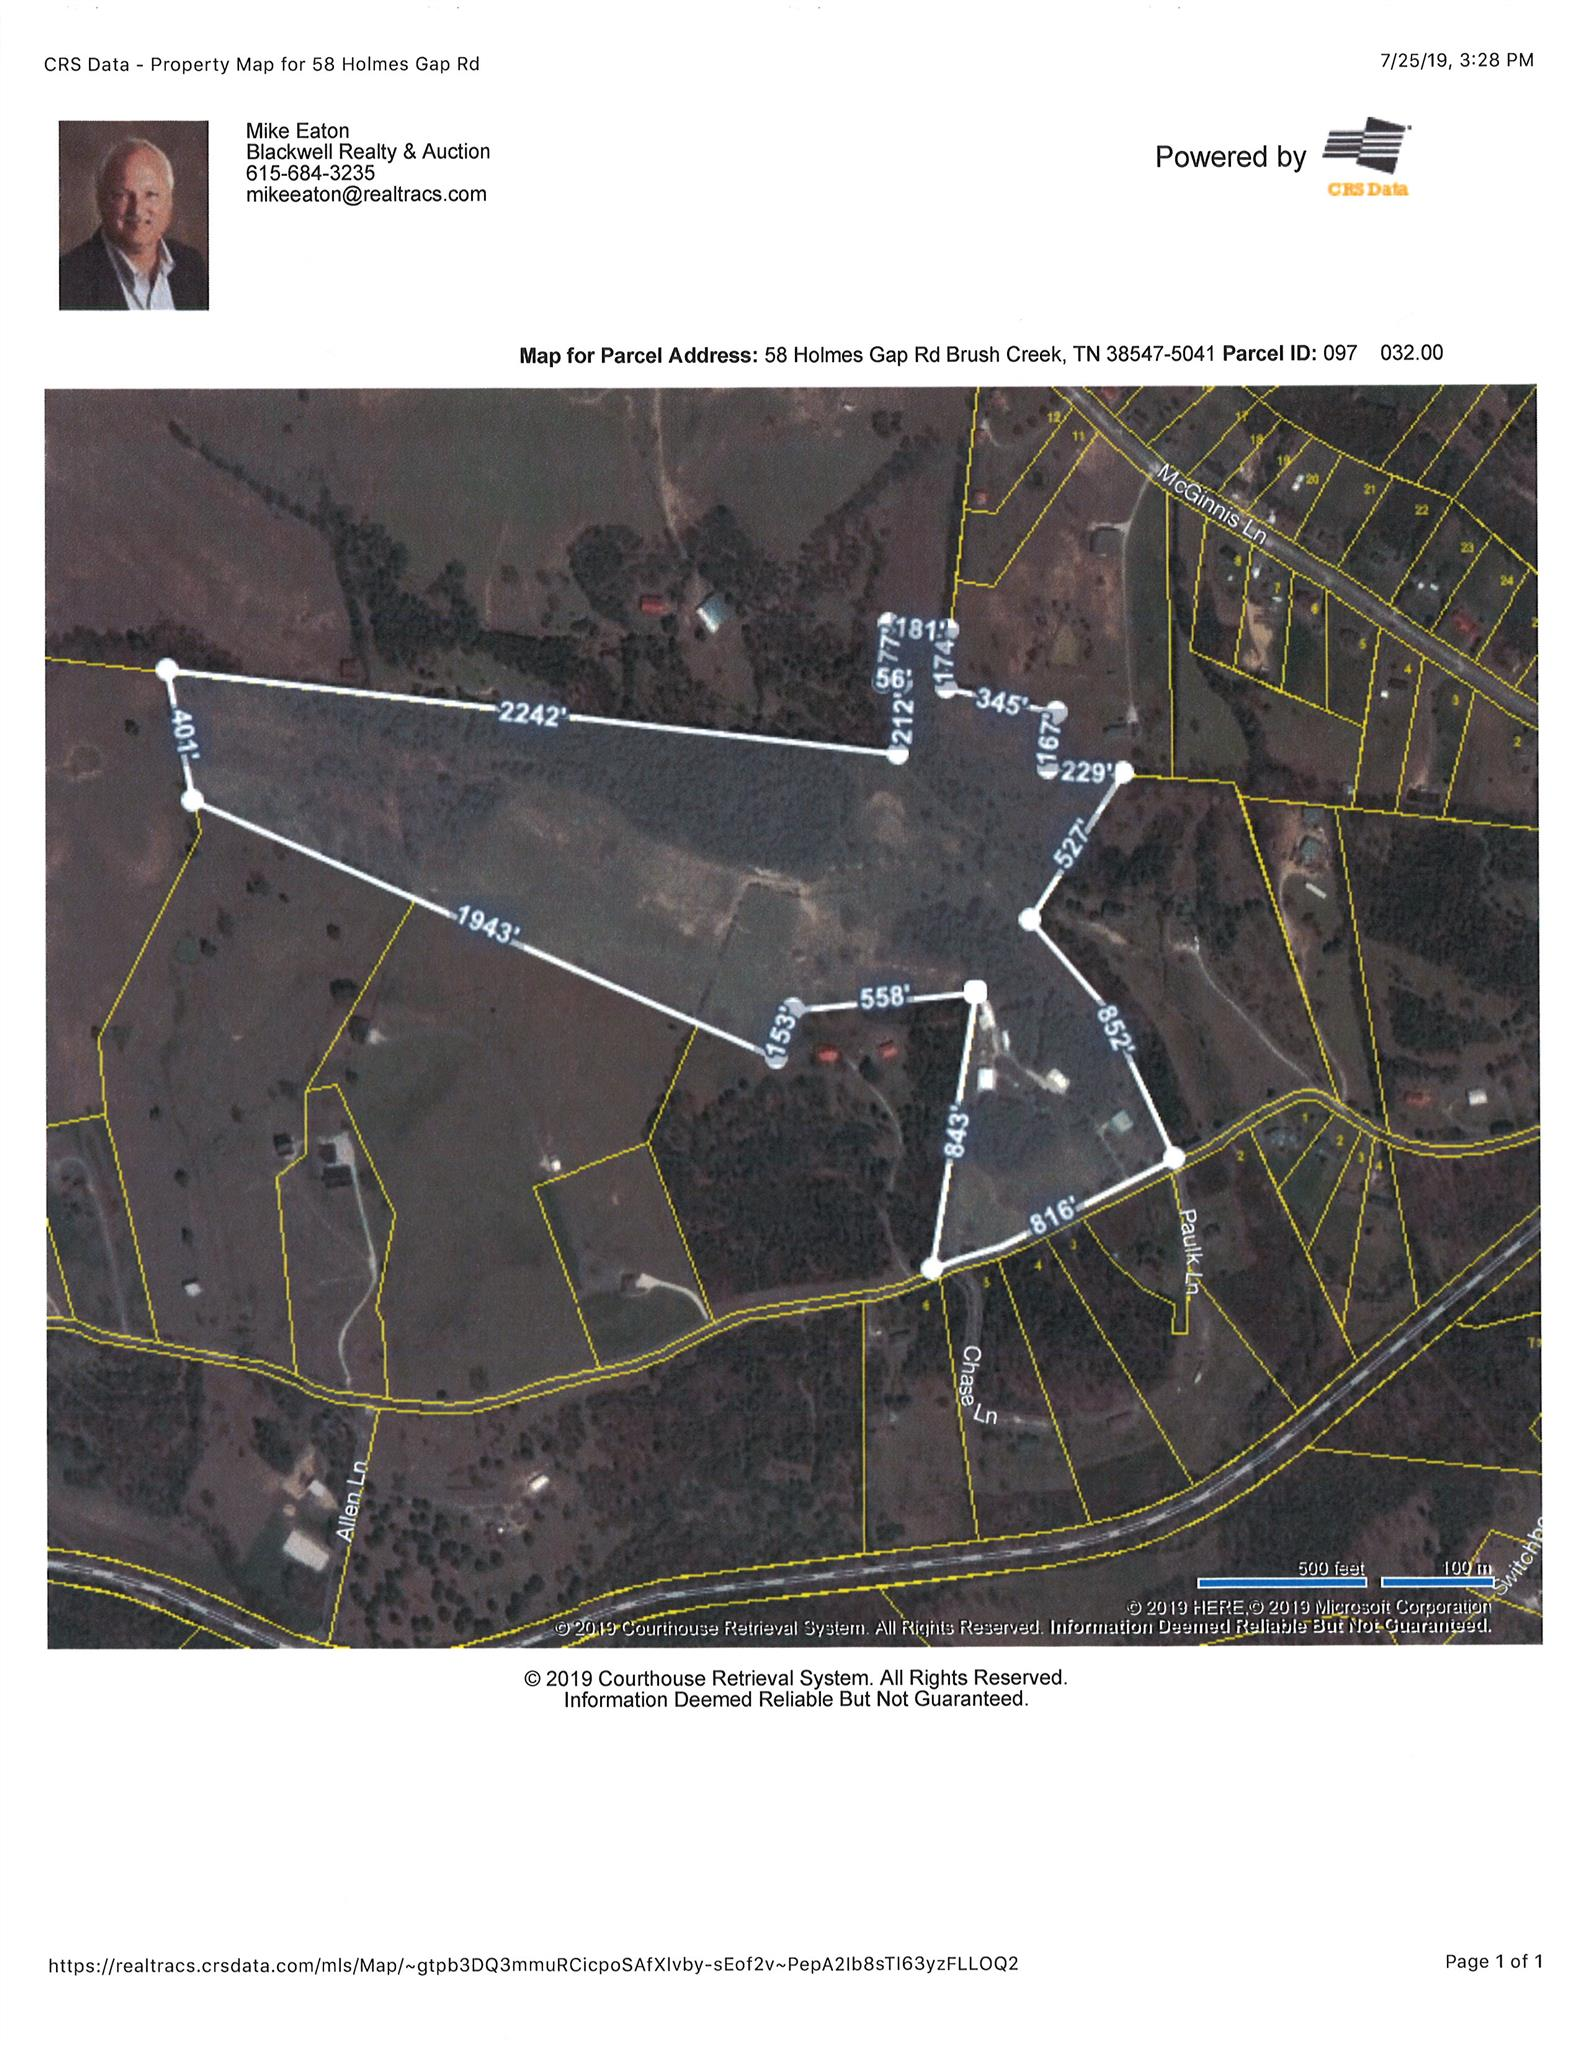 58 Holmes Gap Rd Lot C, Brush Creek, TN 38547 - Brush Creek, TN real estate listing